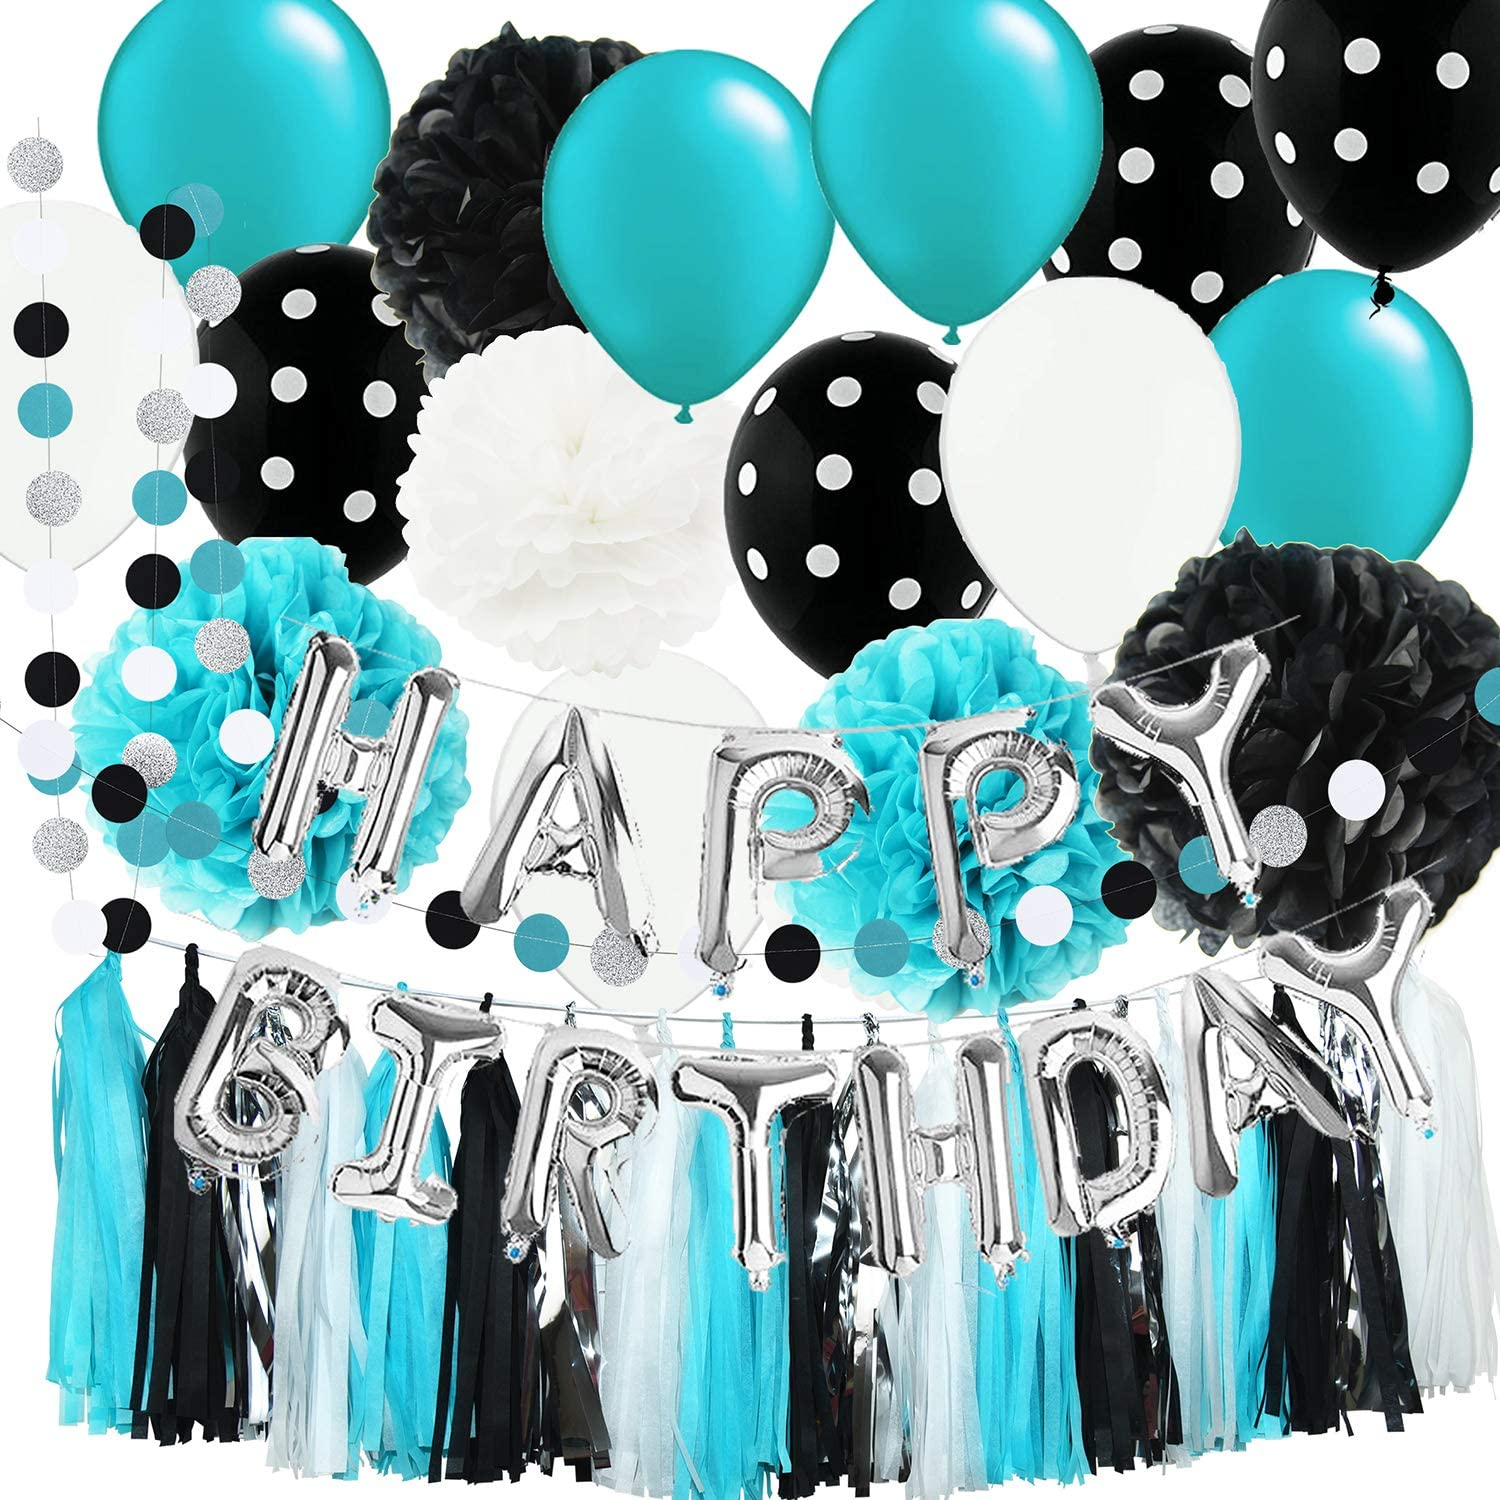 Robin's Egg Blue Birthday Party Decorations White Black Silver Party Decorations Black Polka Dot Balloons Turquoise Sweet 16 Birthday Party Decorations